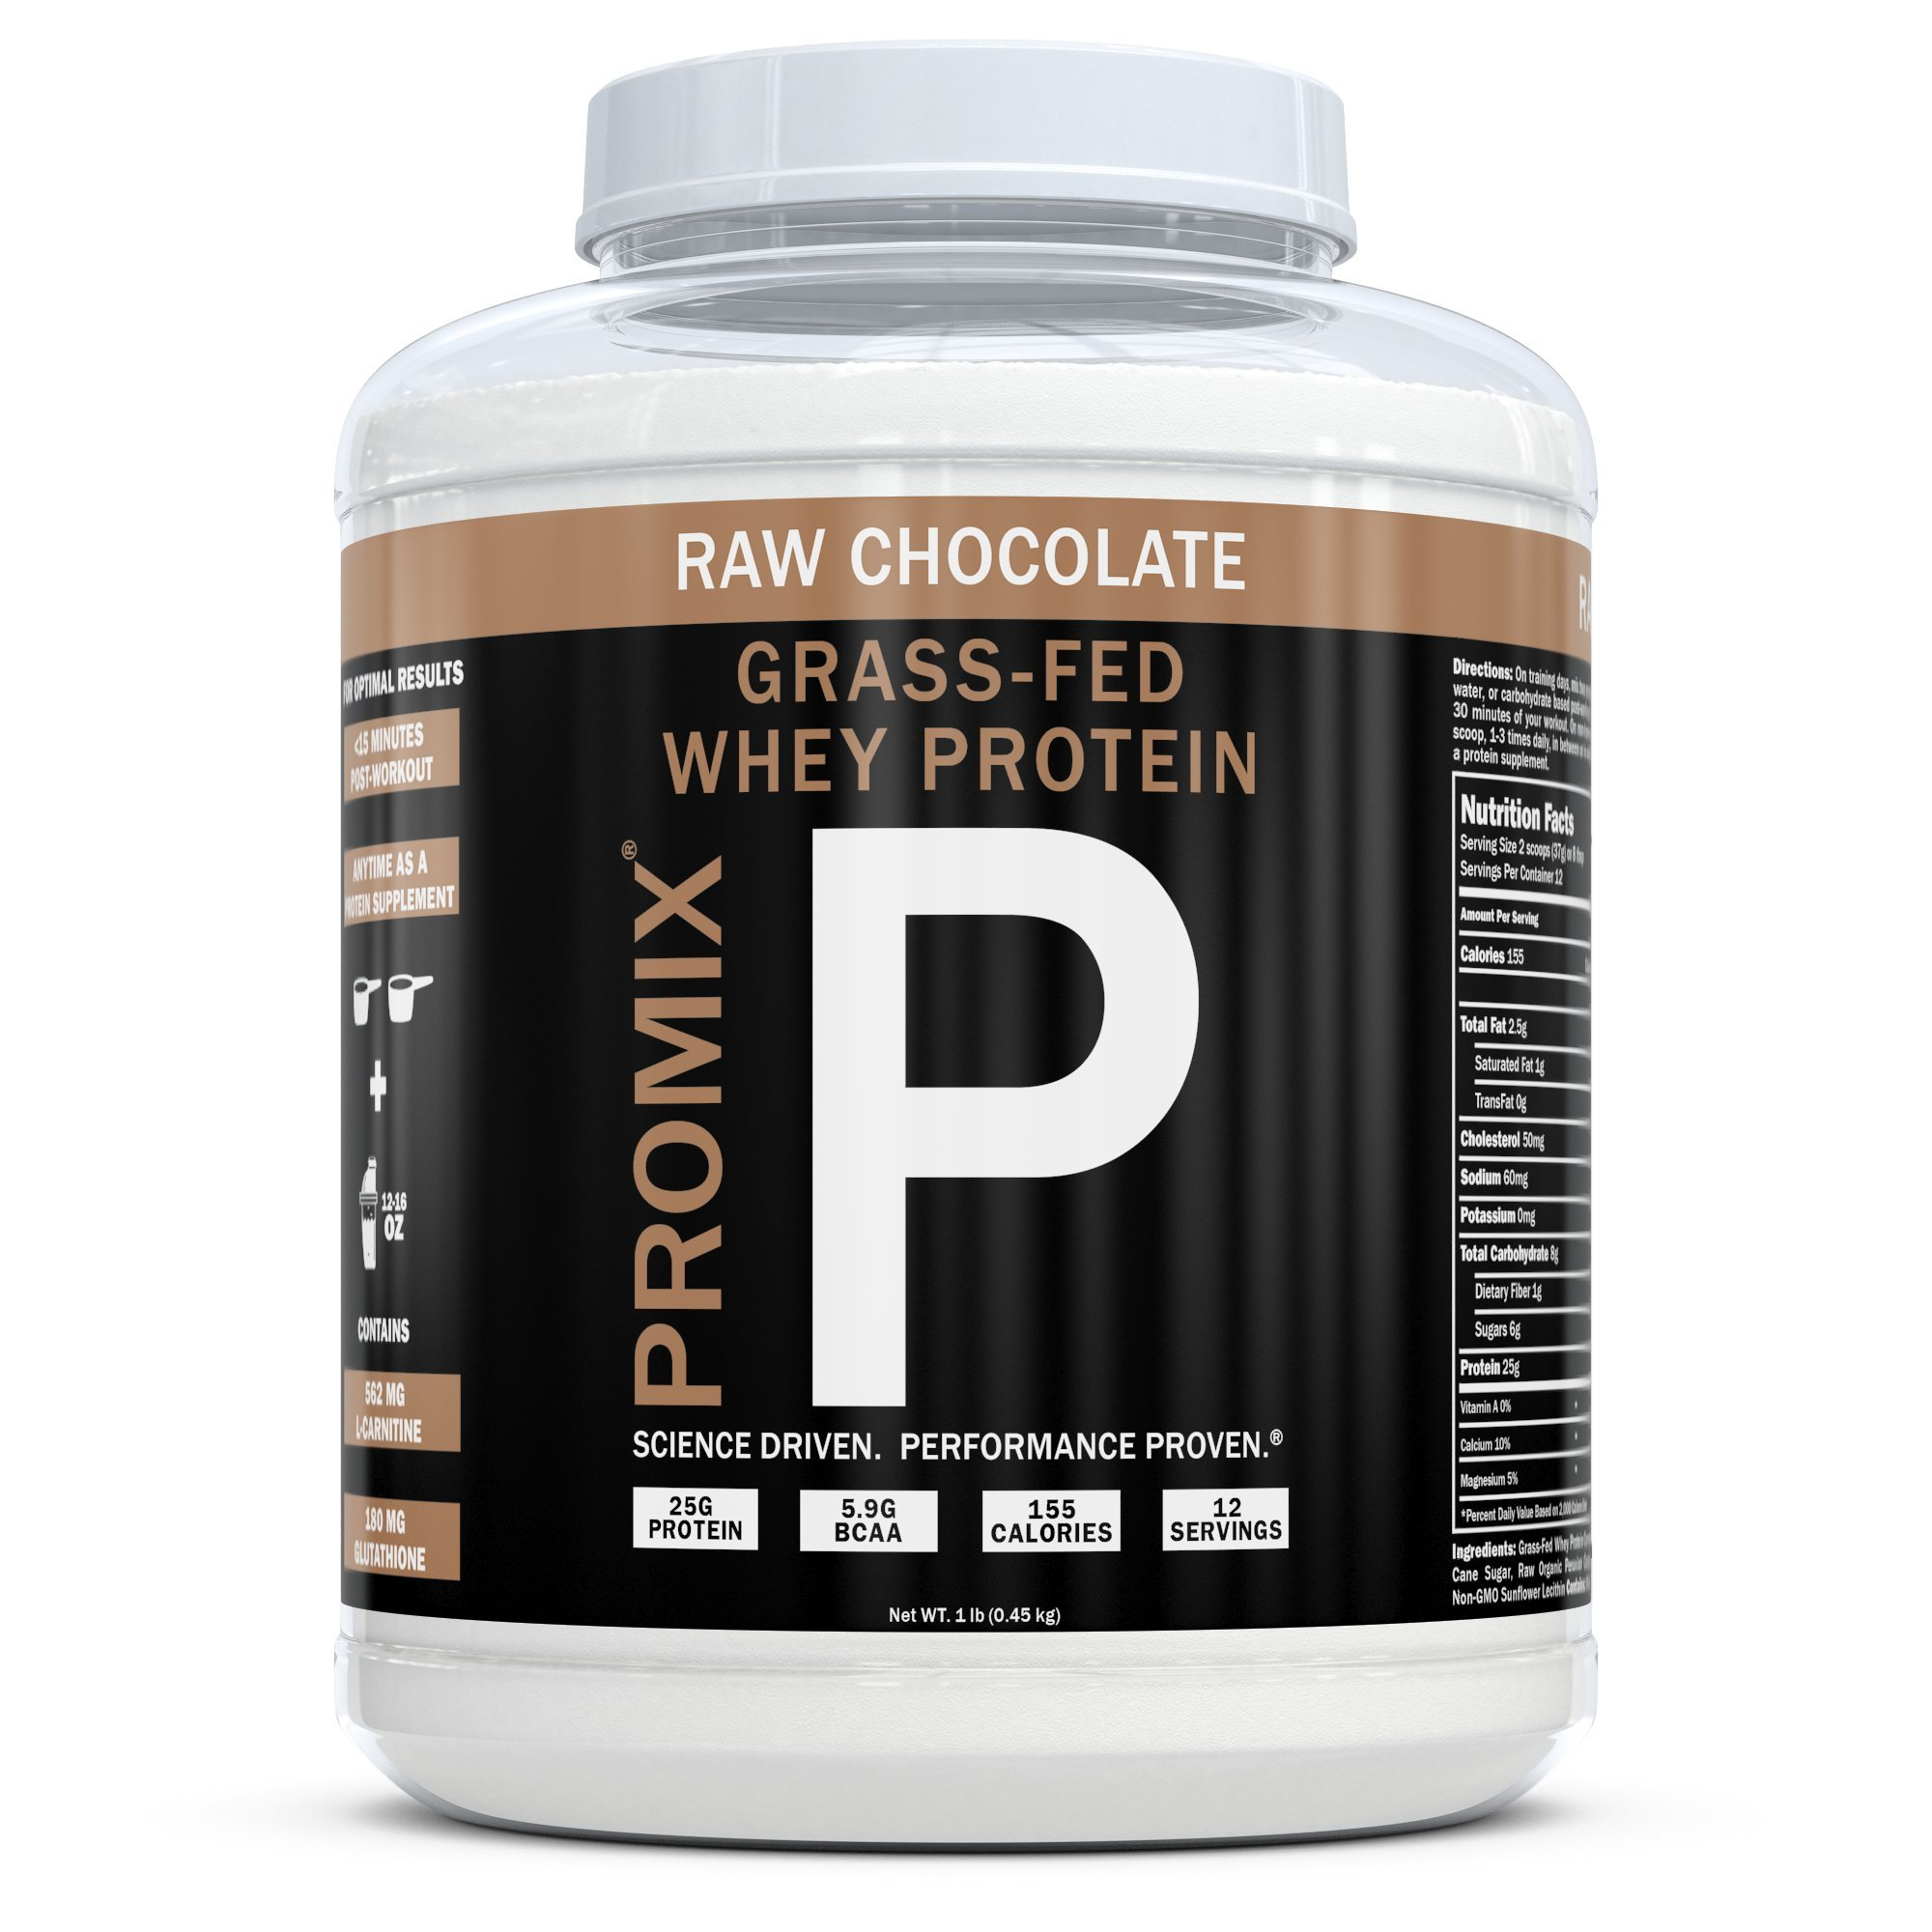 Amazon.com: ProMix Nutrition Container of Chocolate Grass-Fed Whey Protein, 1 Pound: Health & Personal Care